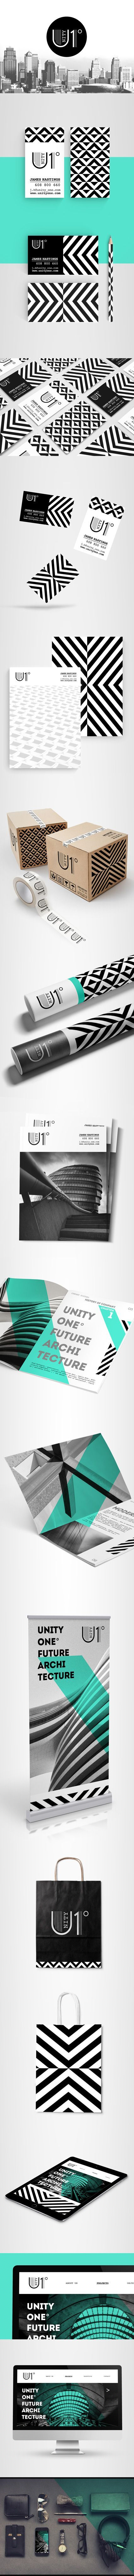 Identity created for modern architecture studio.: